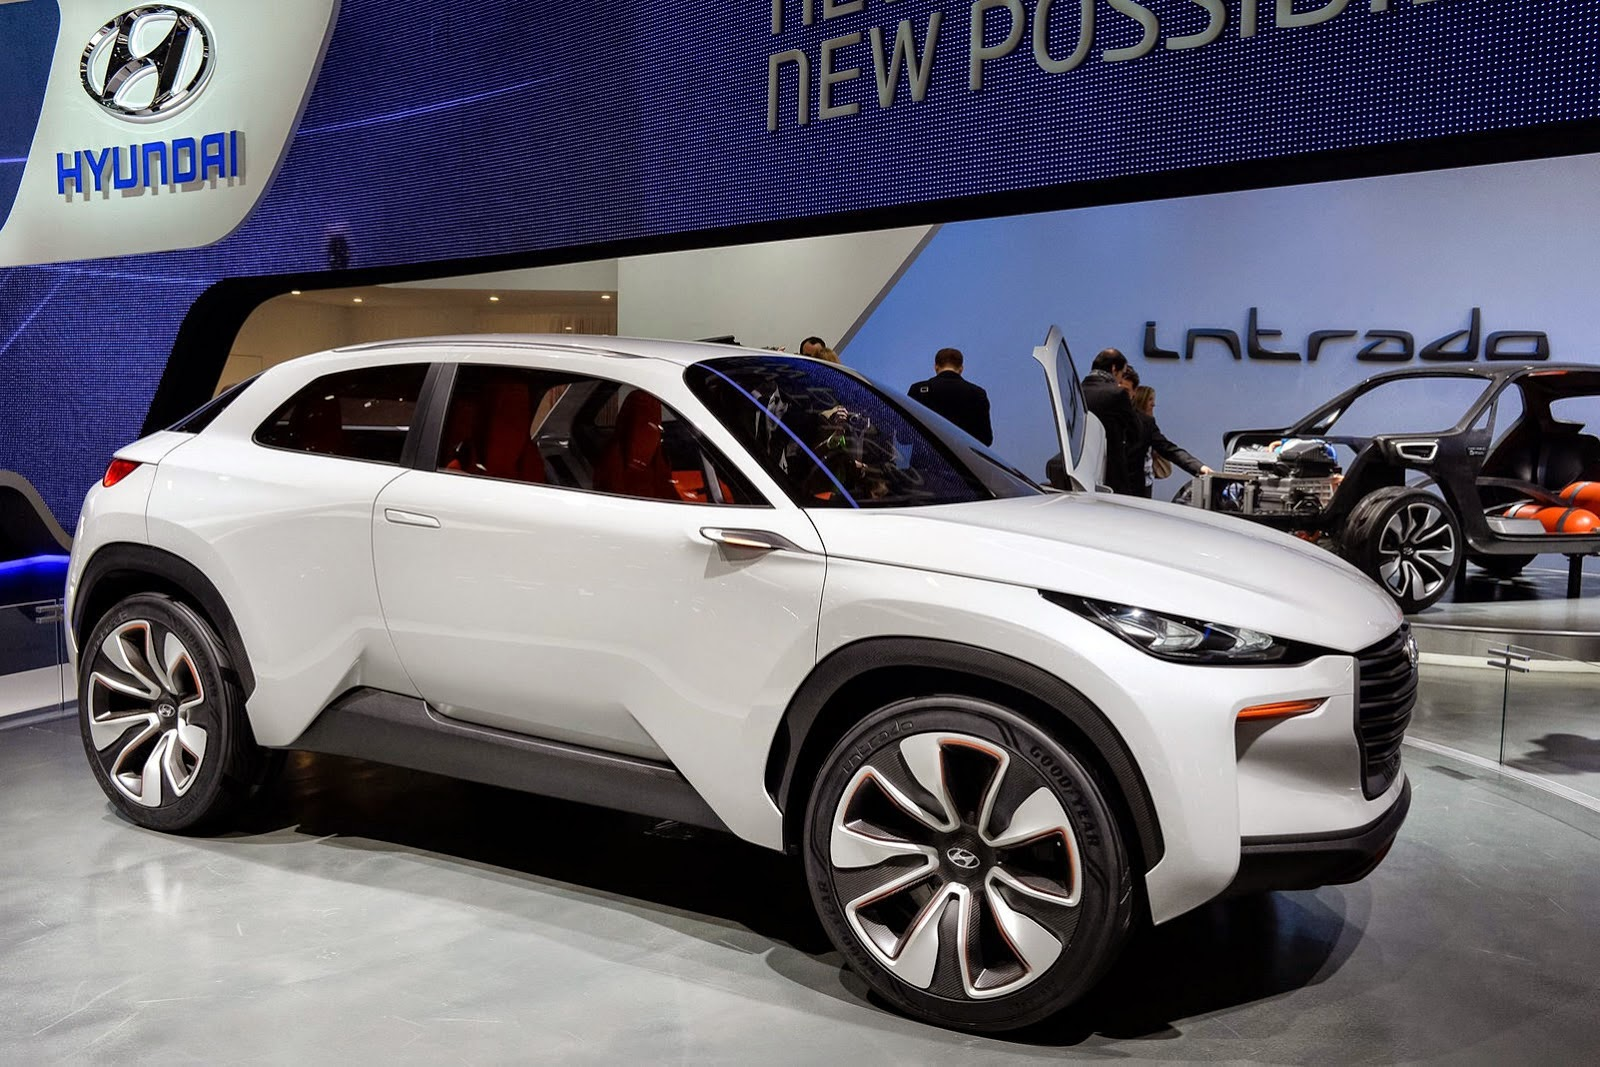 new car launches europe 2015Hyundai Could Launch A Nissan Juke Rival In Europe And US In 2017